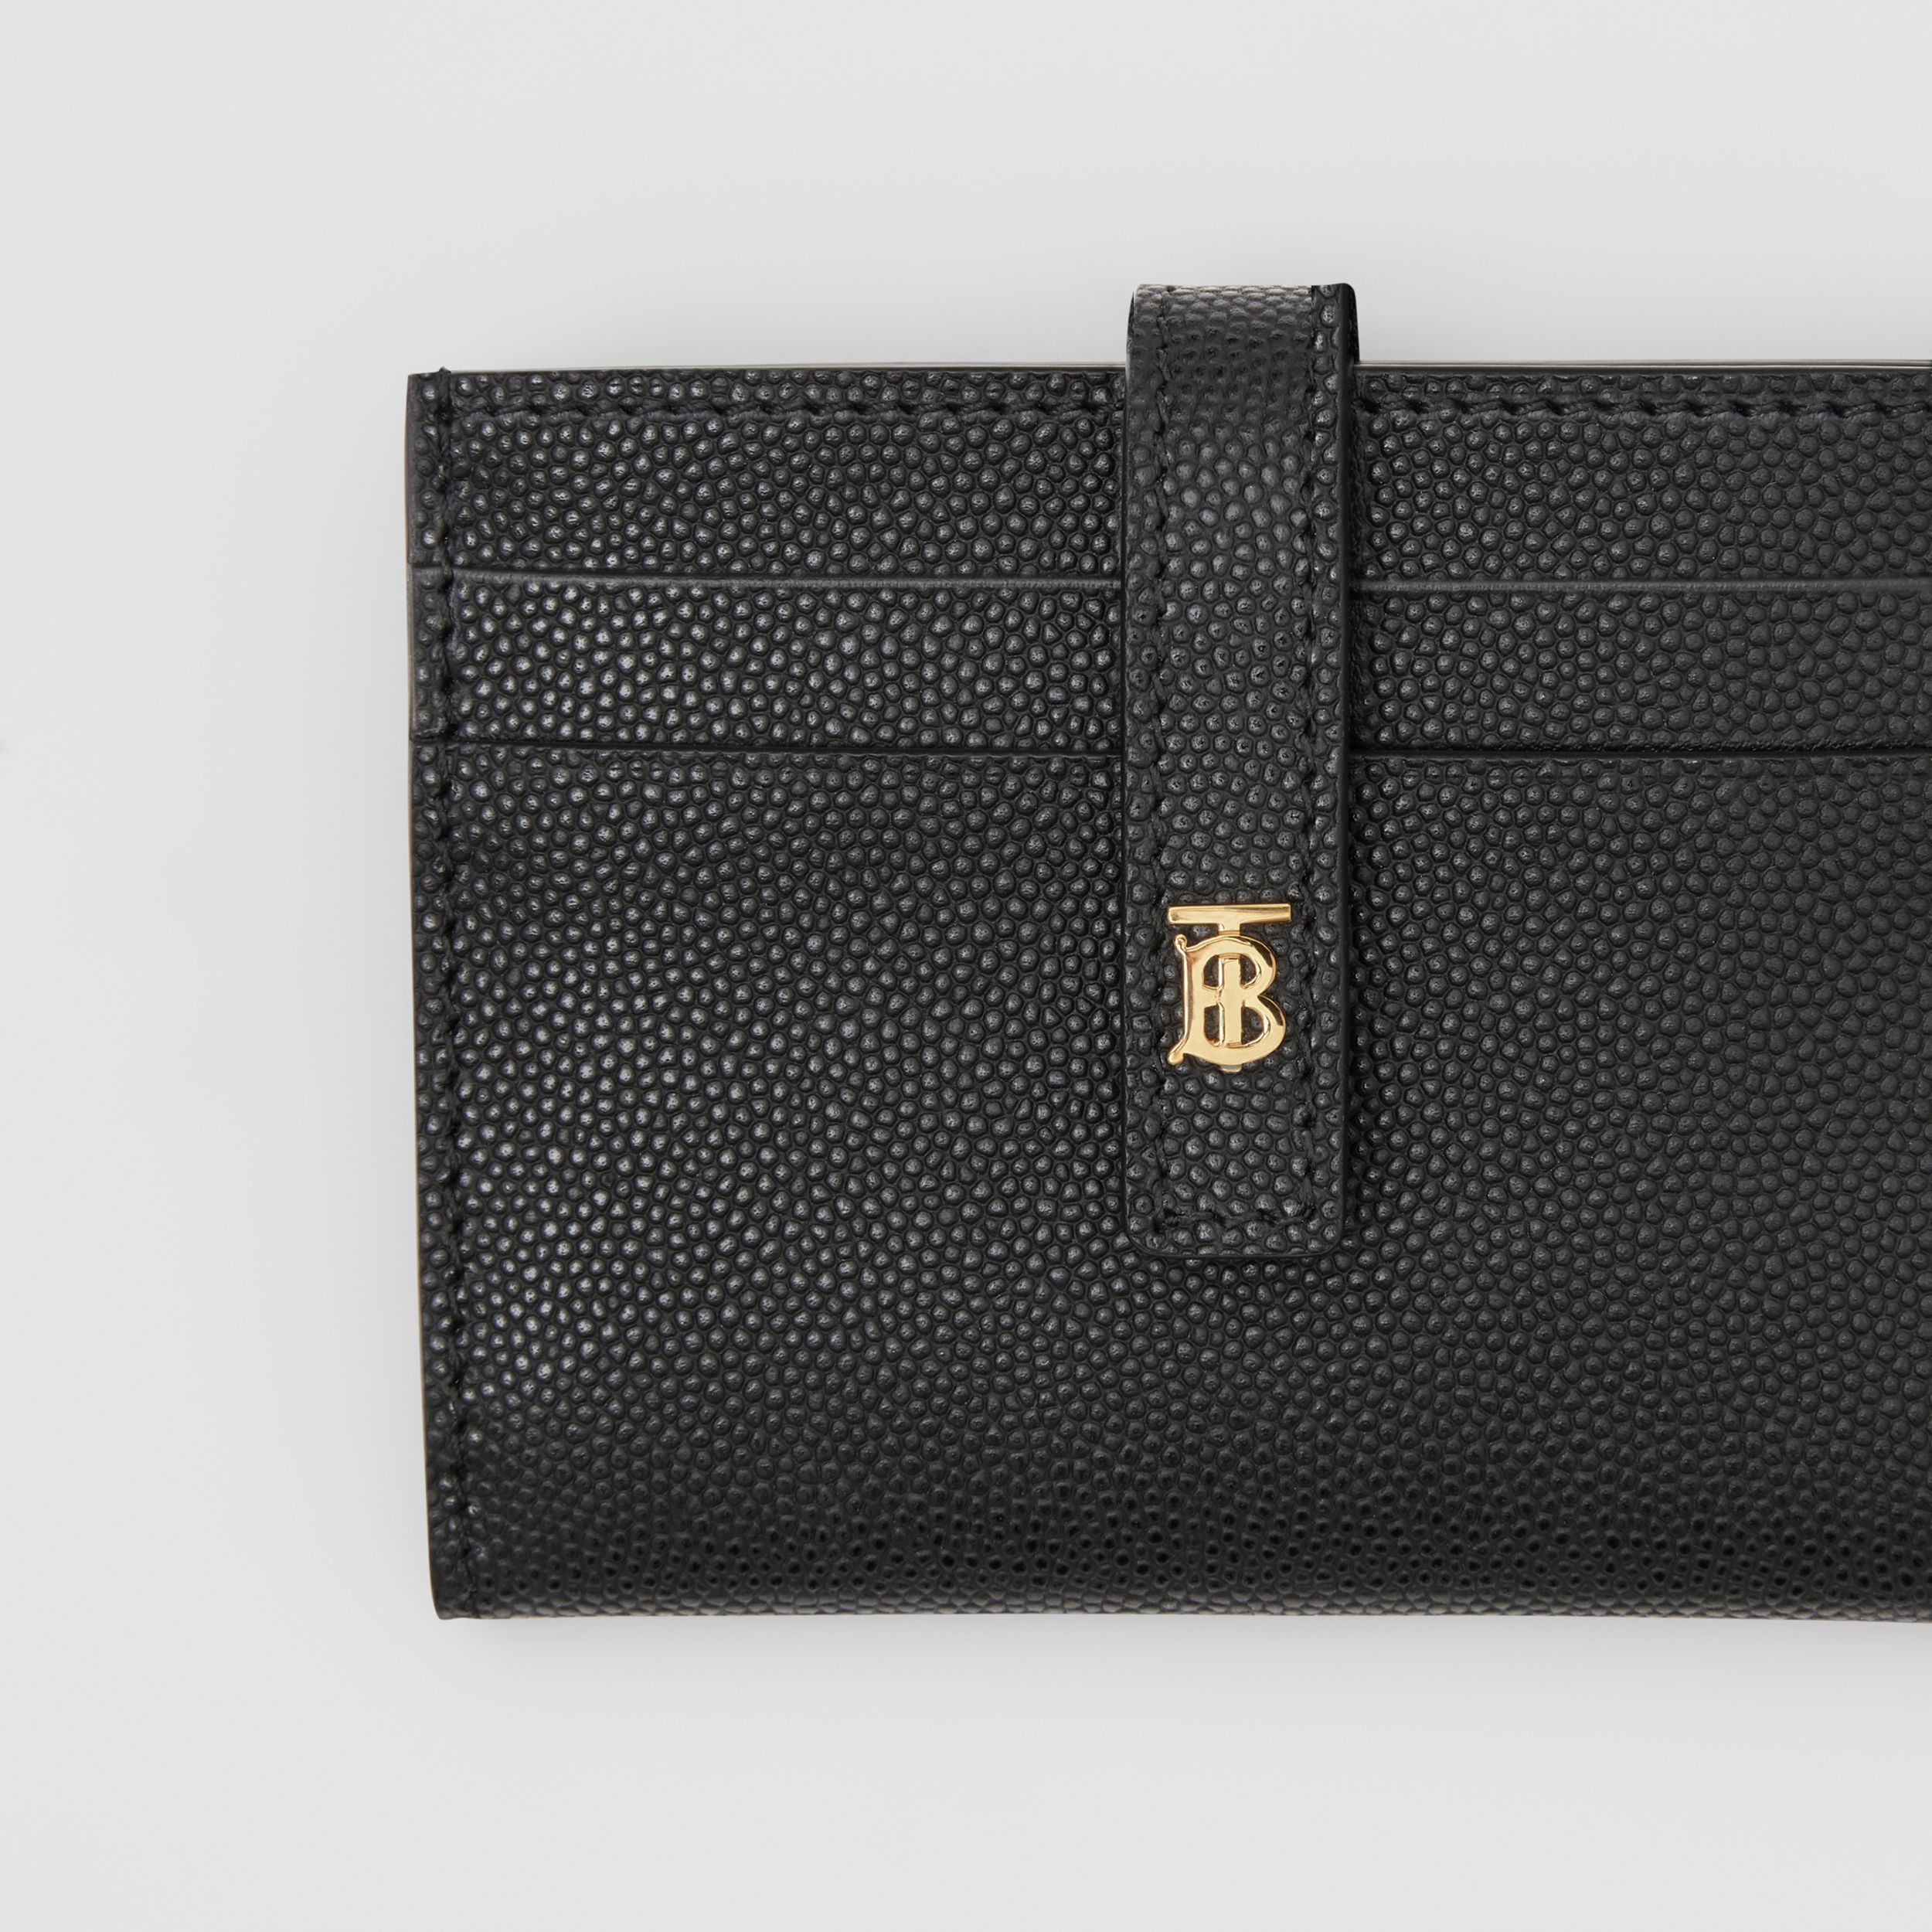 Monogram Motif Leather Folding Card Case in Black - Women | Burberry - 2